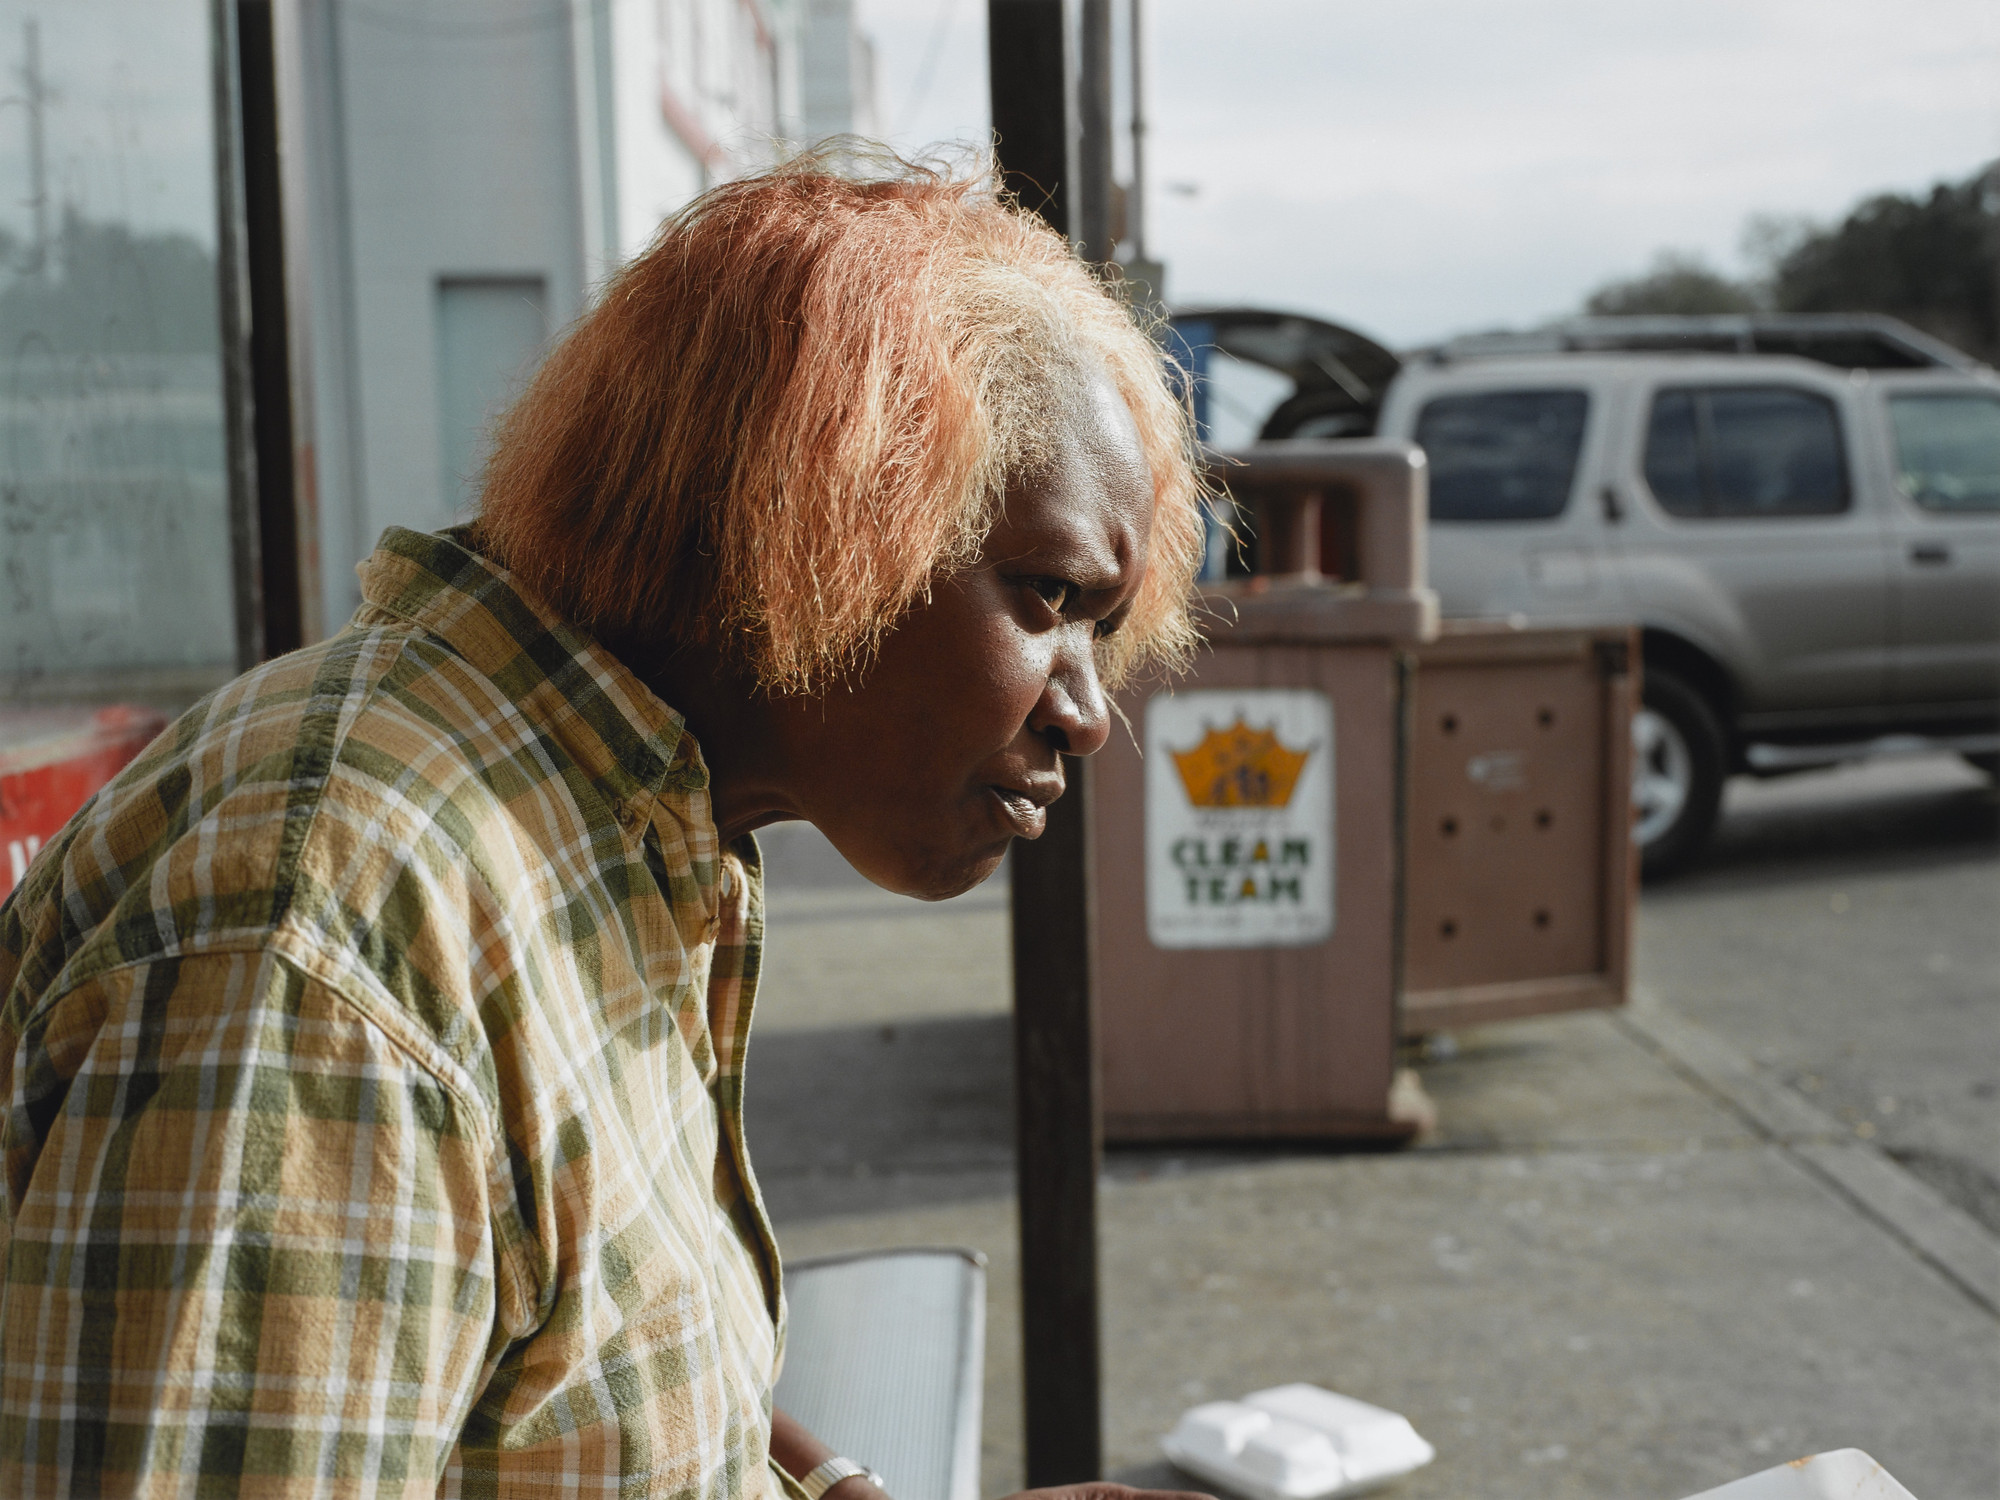 Paul Graham. New Orleans, 2004 (Woman Eating). 2004